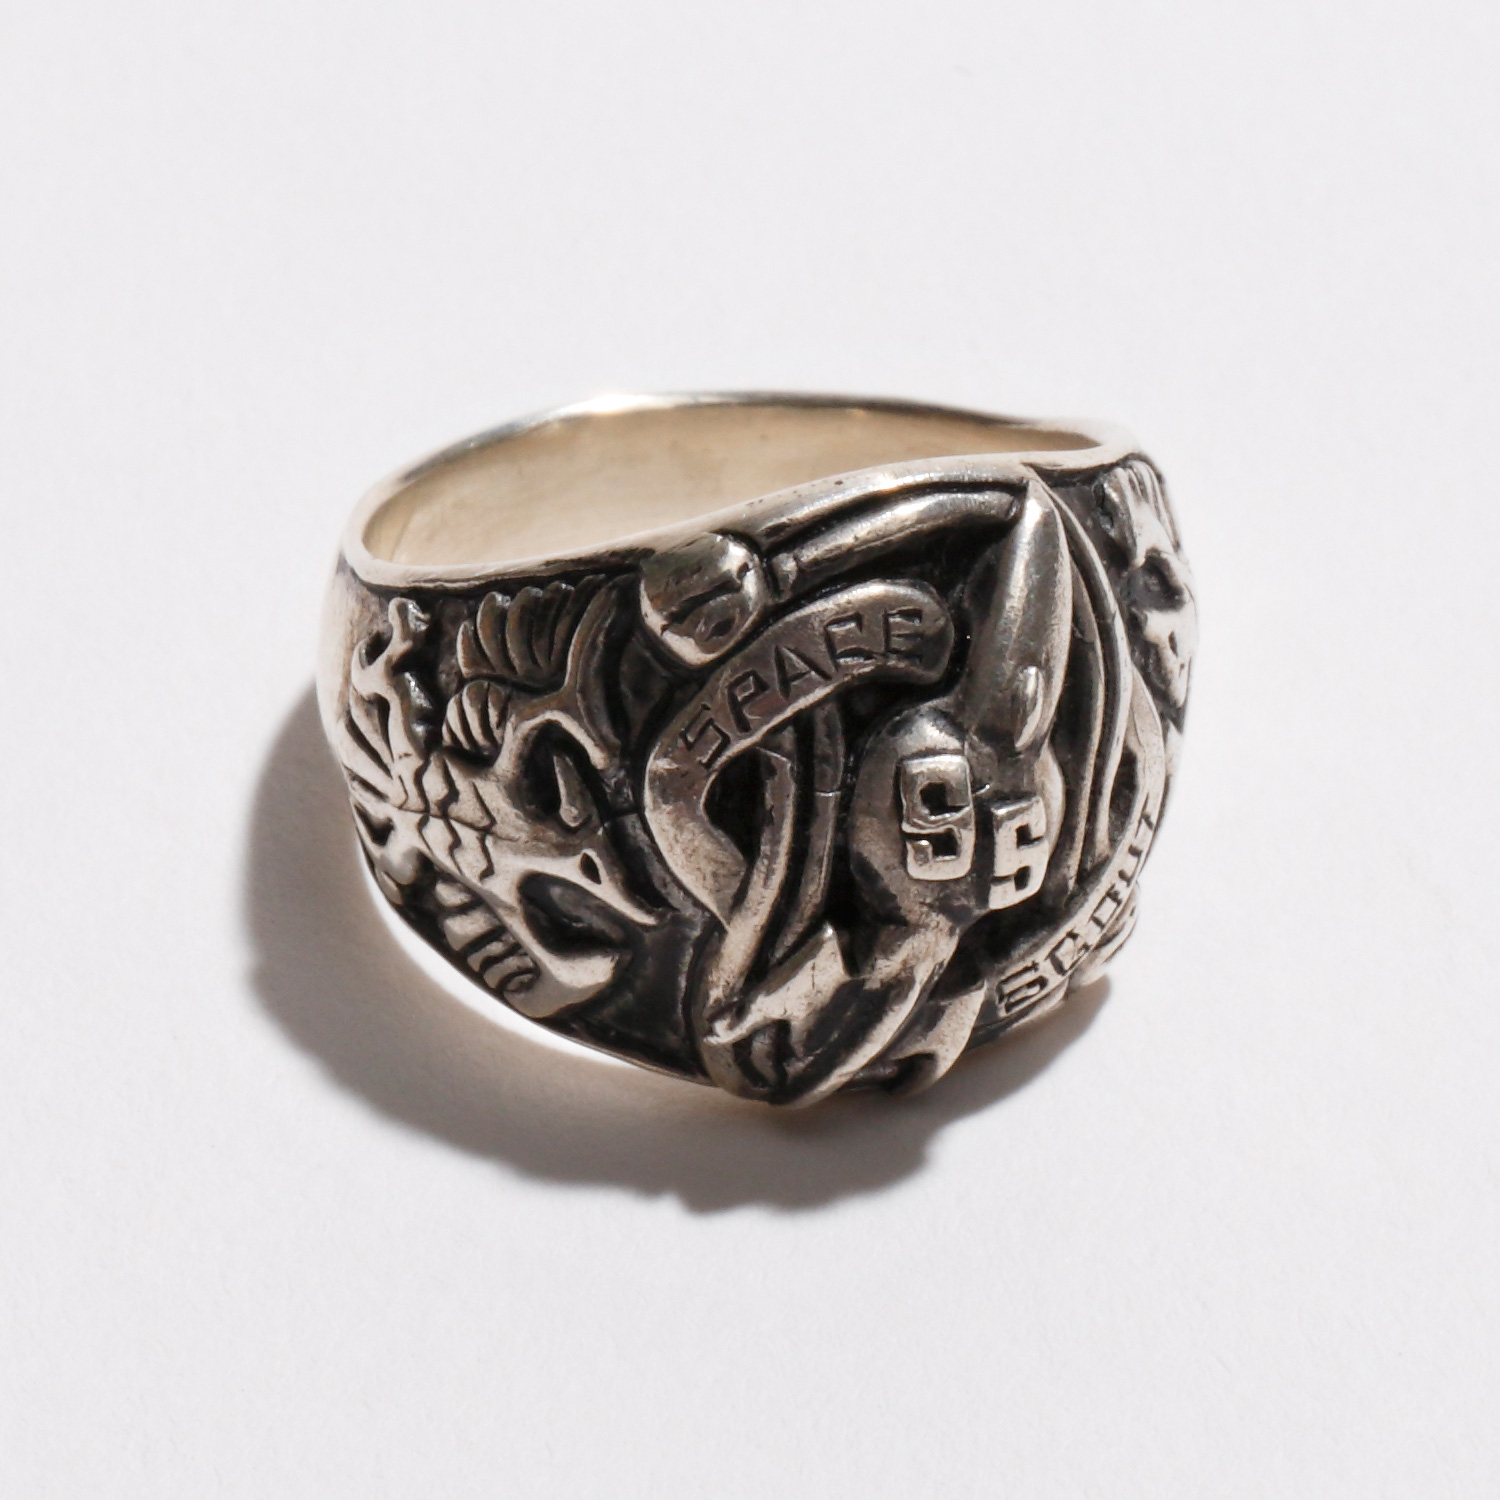 SPACE SCOUT RING